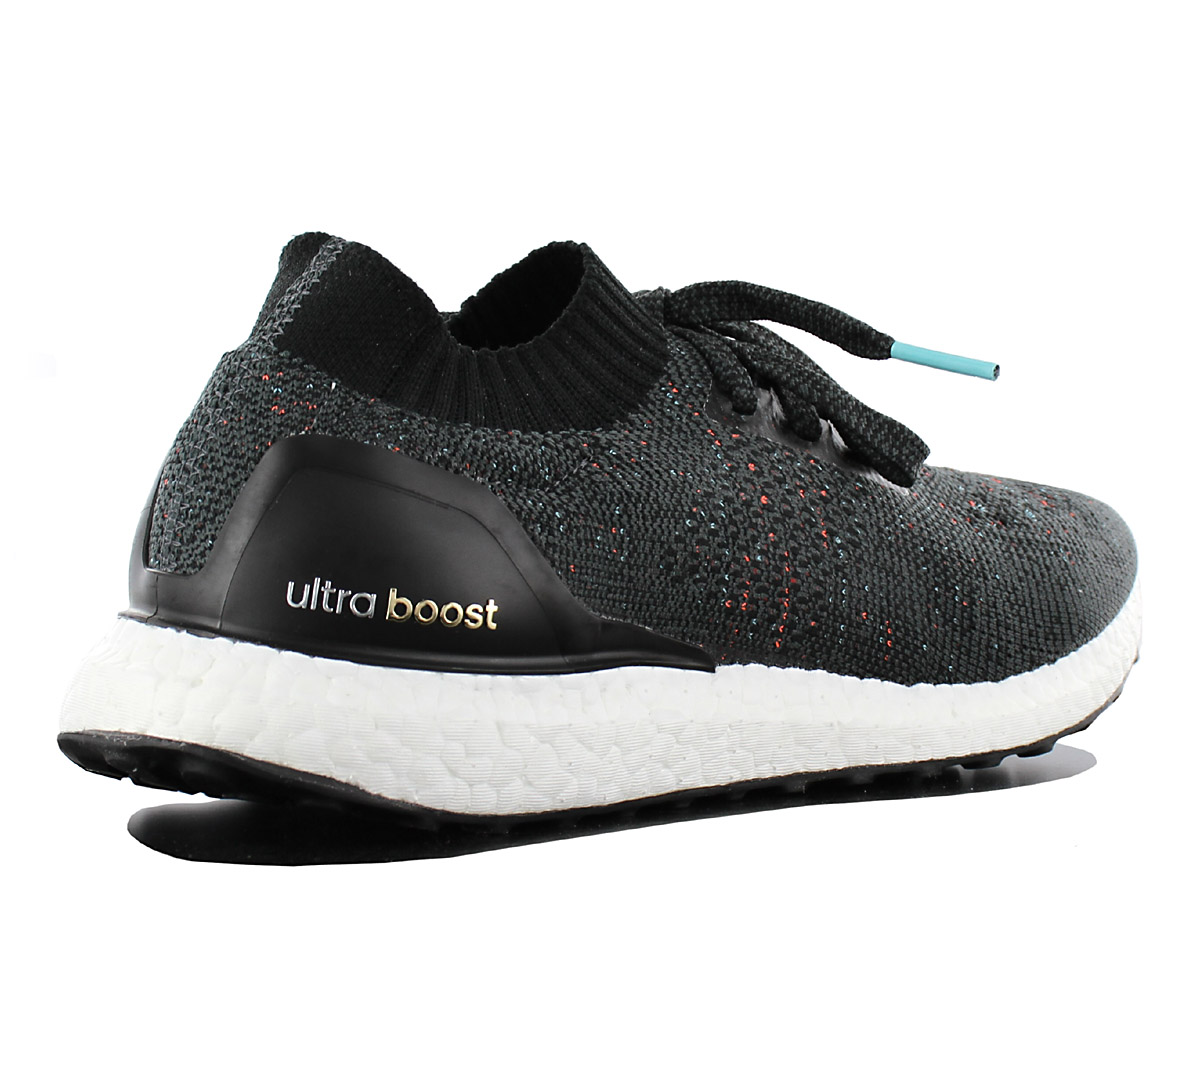 new style fa038 30330 Details about Adidas Ultra Boost Primeknit Uncaged Men's Shoes Ultraboost  Running Shoes BB4486